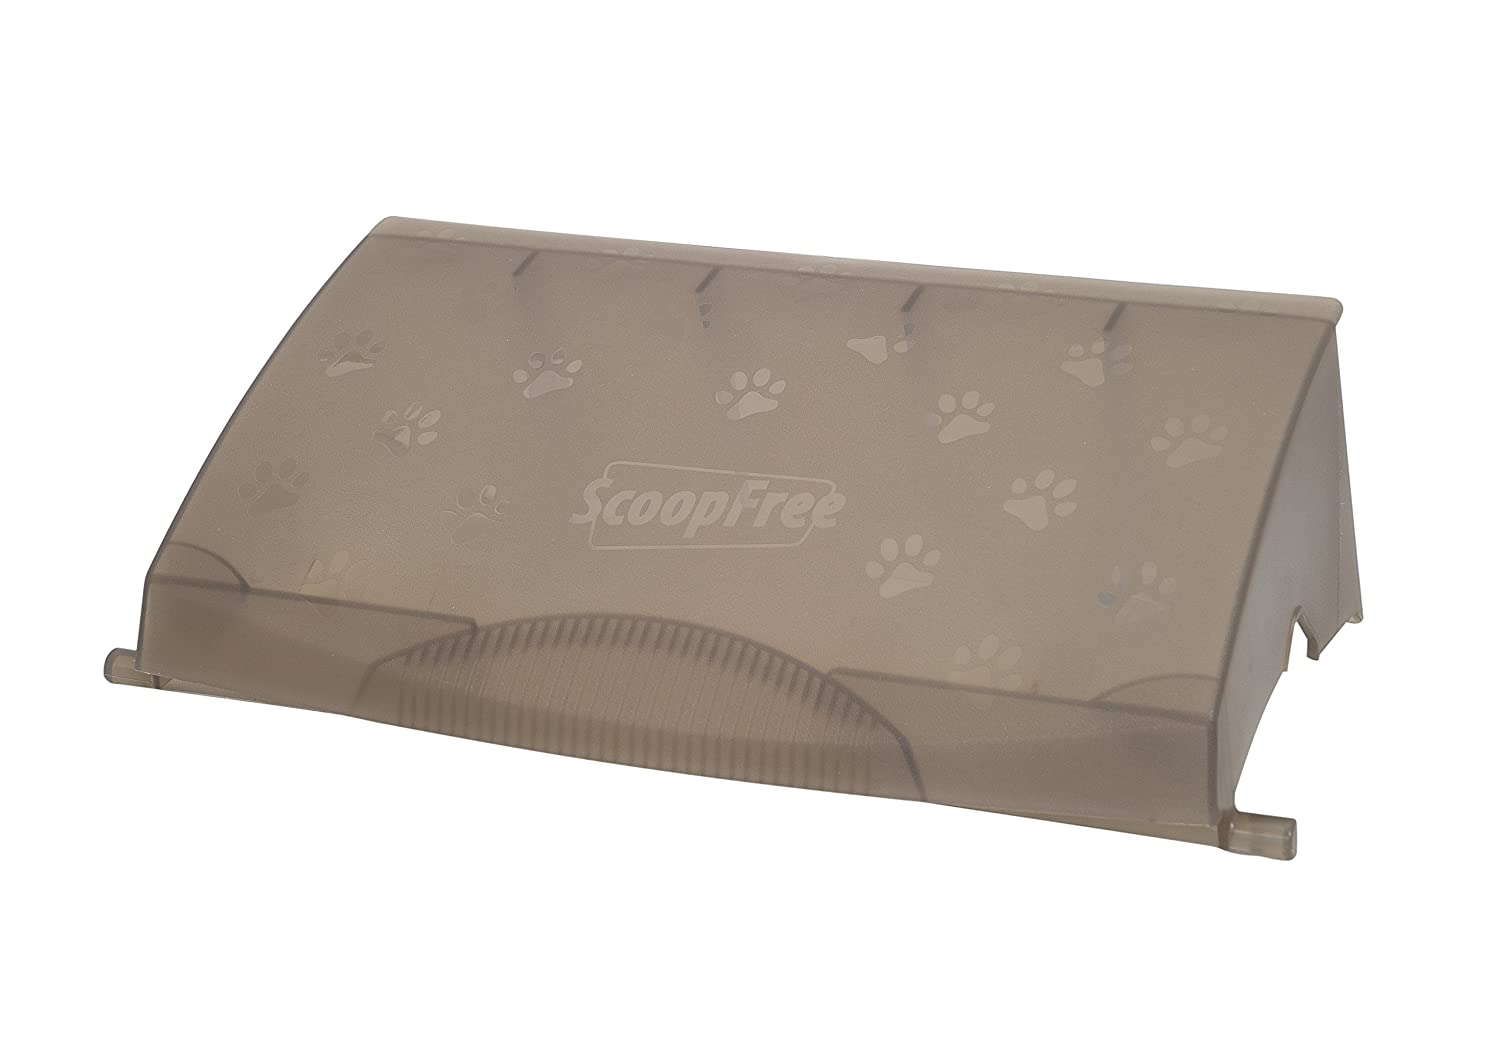 PetSafe ScoopFree Self Cleaning Litter Box Waste Trap Cover